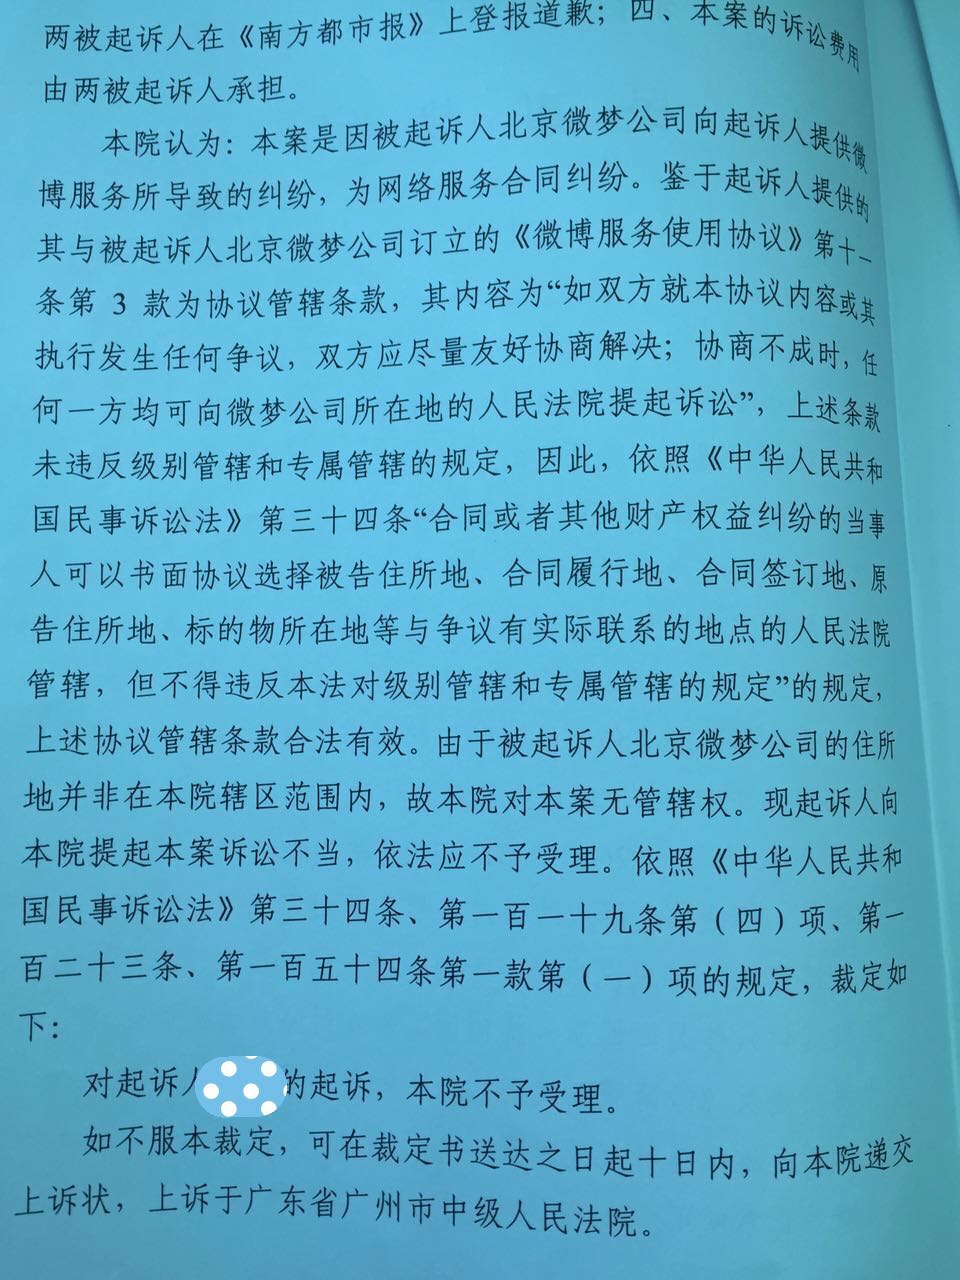 Civil ruling by Guangzhou Tianhe District People's Court (page 2)